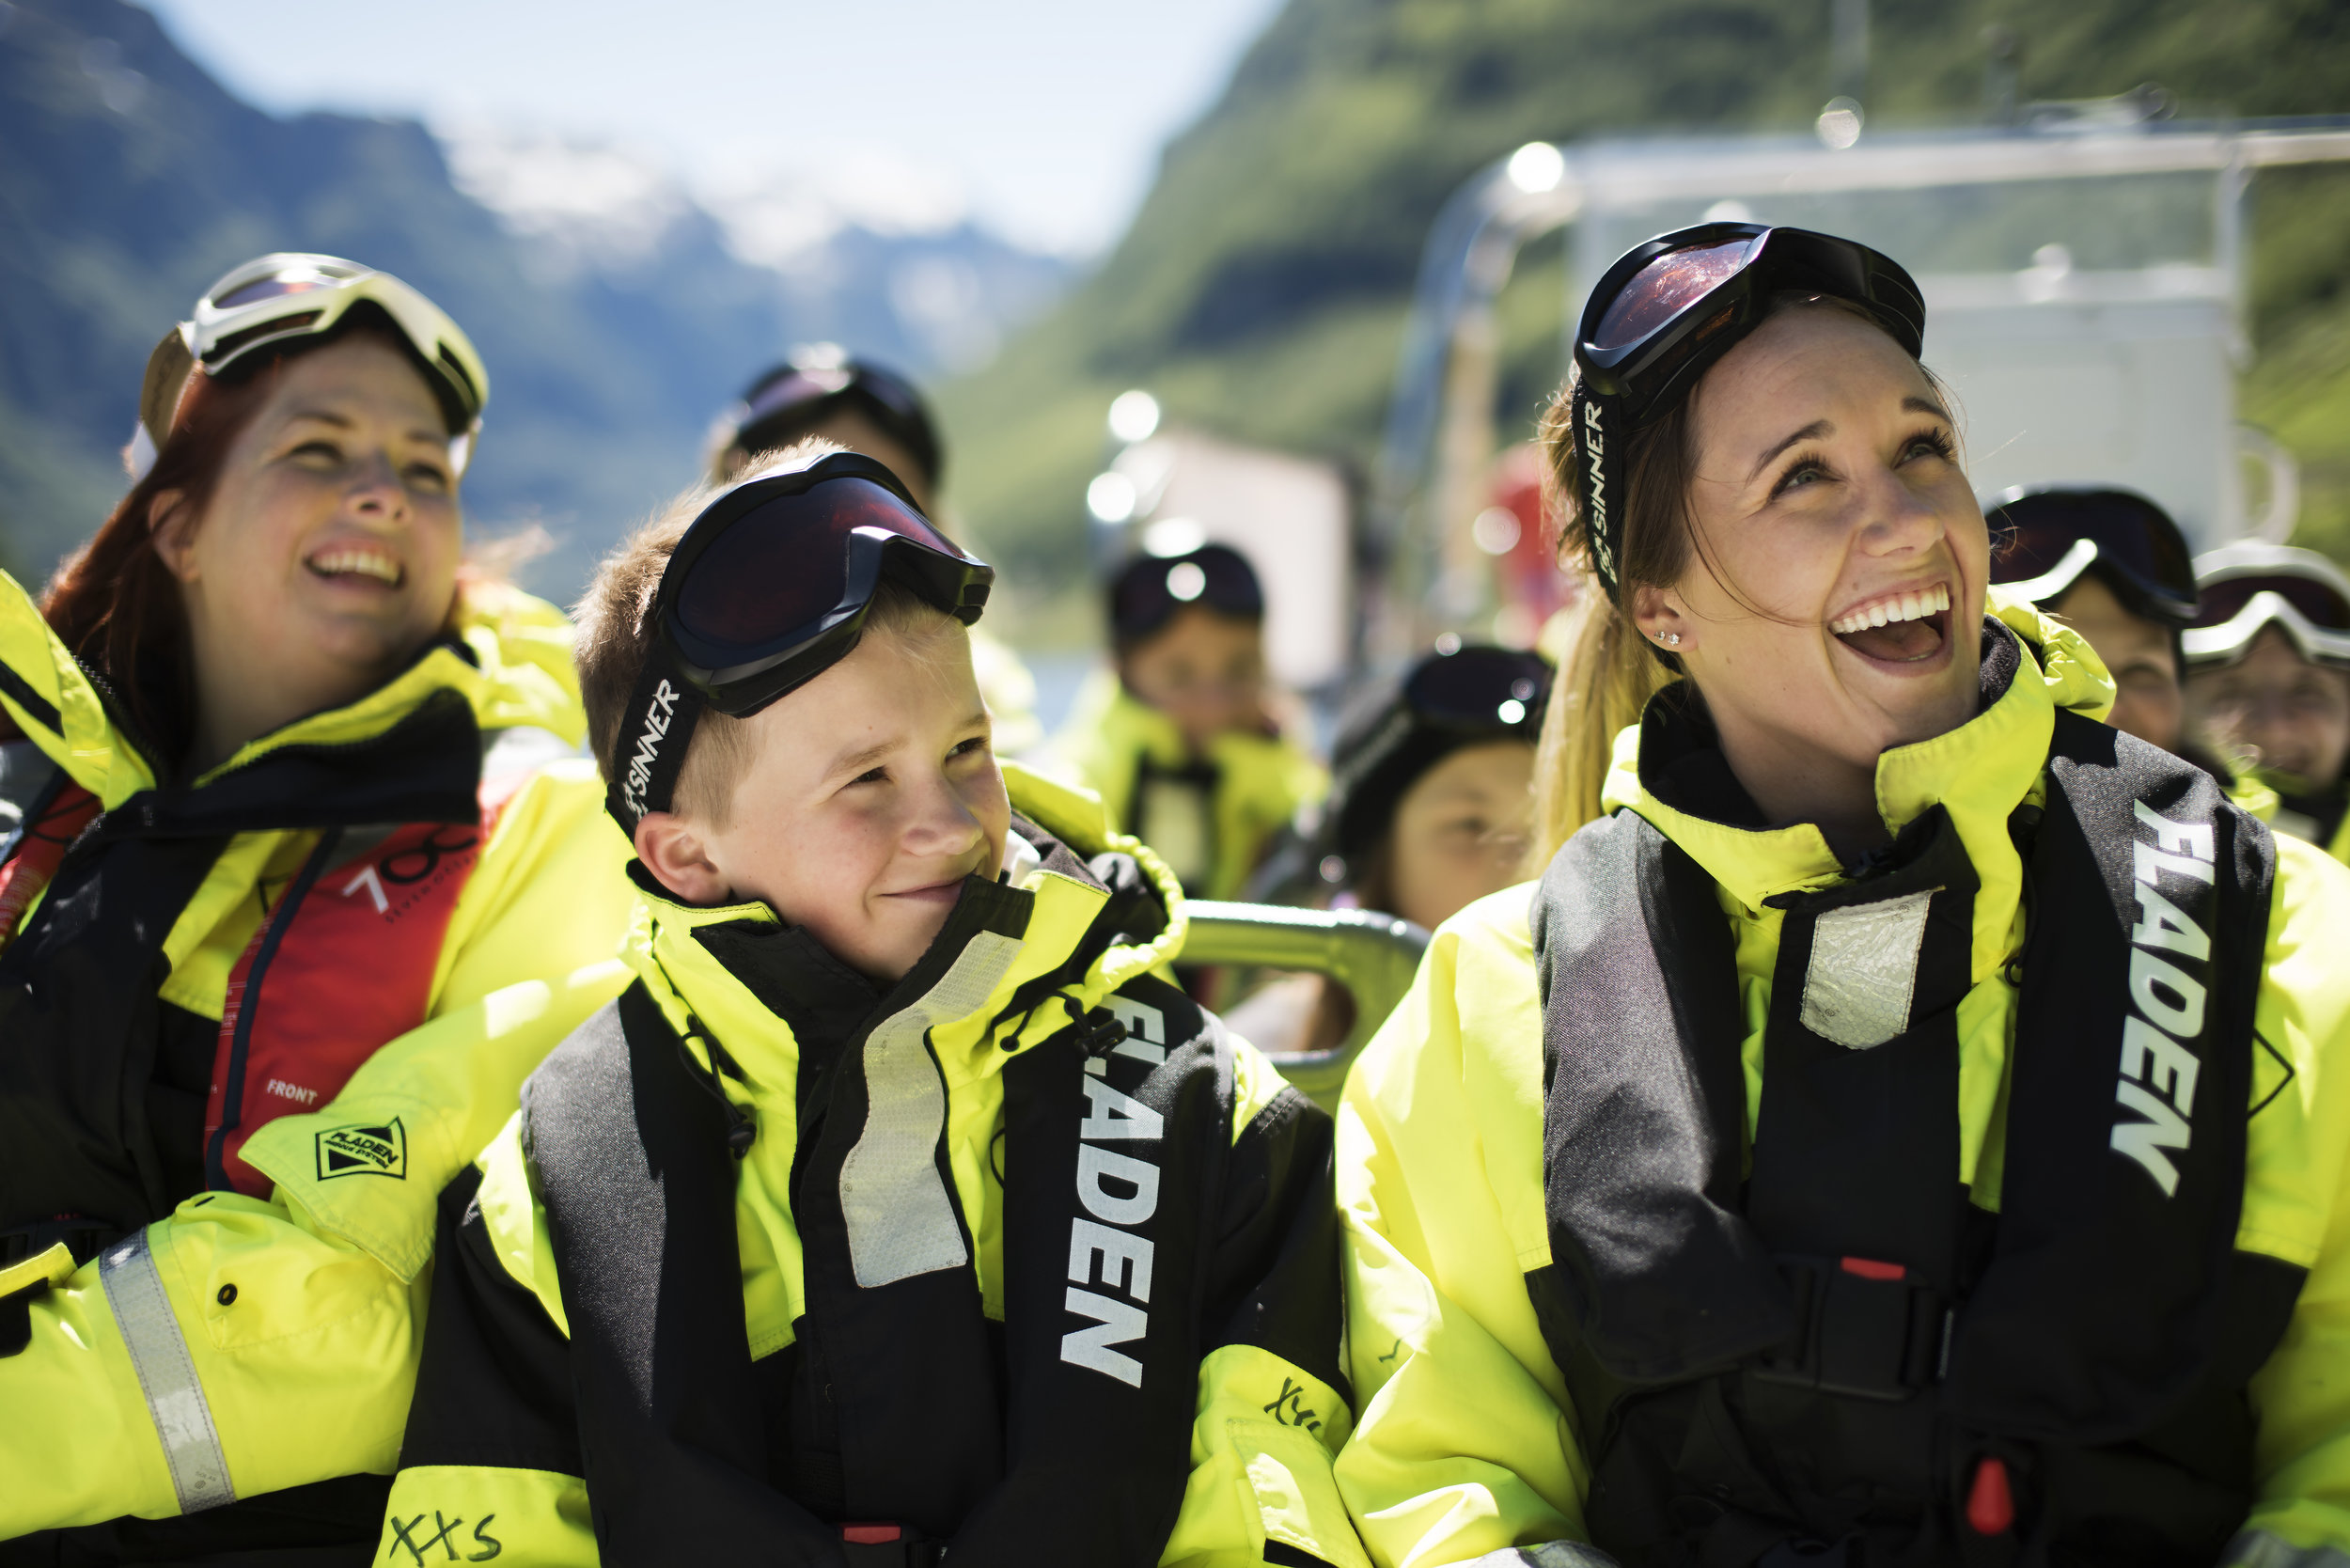 practical information - Time/period: 1 hour and 30 min. (Flåm - Sagfossen - Flåm)1.5.2019 - 30.9.2019At 10:00 - 11:30 and 15:00 - 16:30.Meet: 20 minutes prior to departure in FjordSafari receptionPrice: Adults NOK 710,- / Children NOK 530,- (free for children below 4)